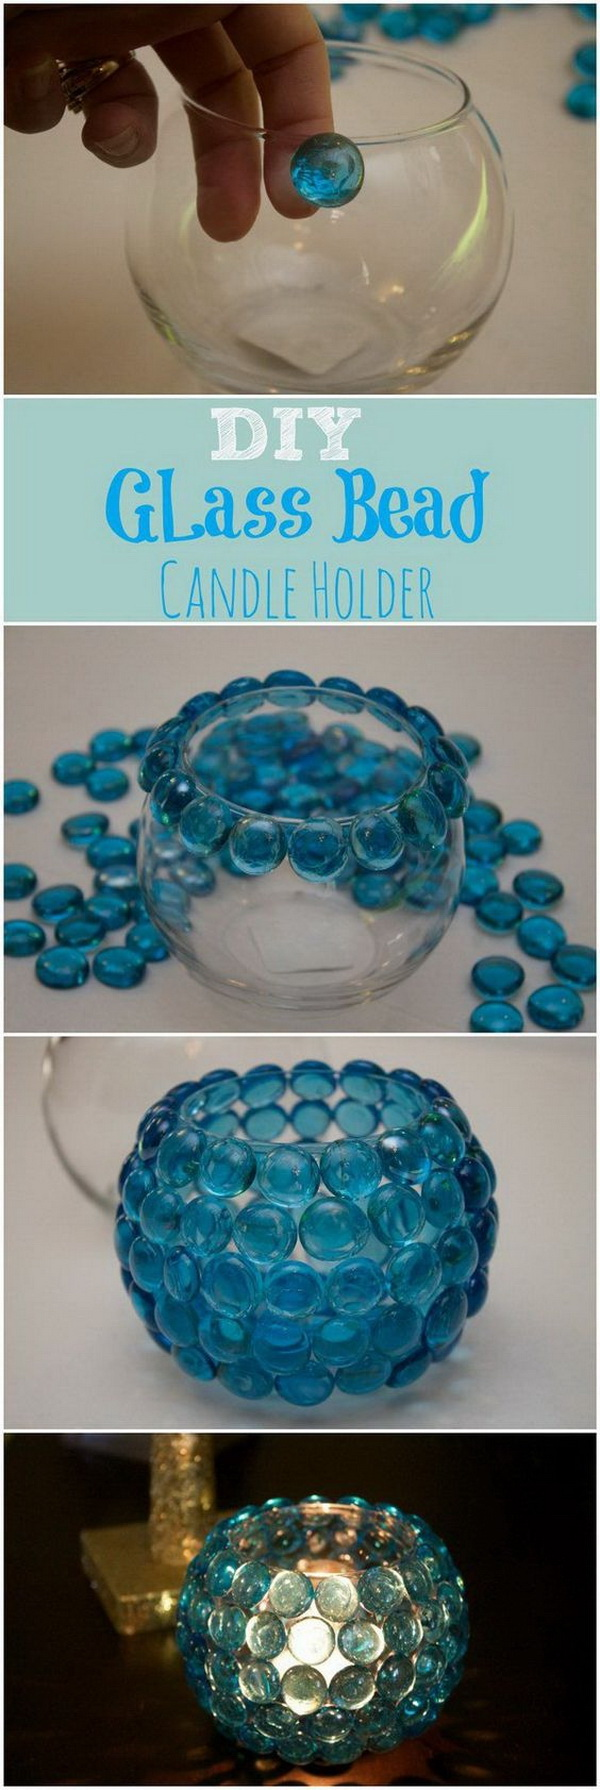 Glass Bead Candle Holders. Best and super easy dollar store crafts! These would make great centerpieces for a wedding.